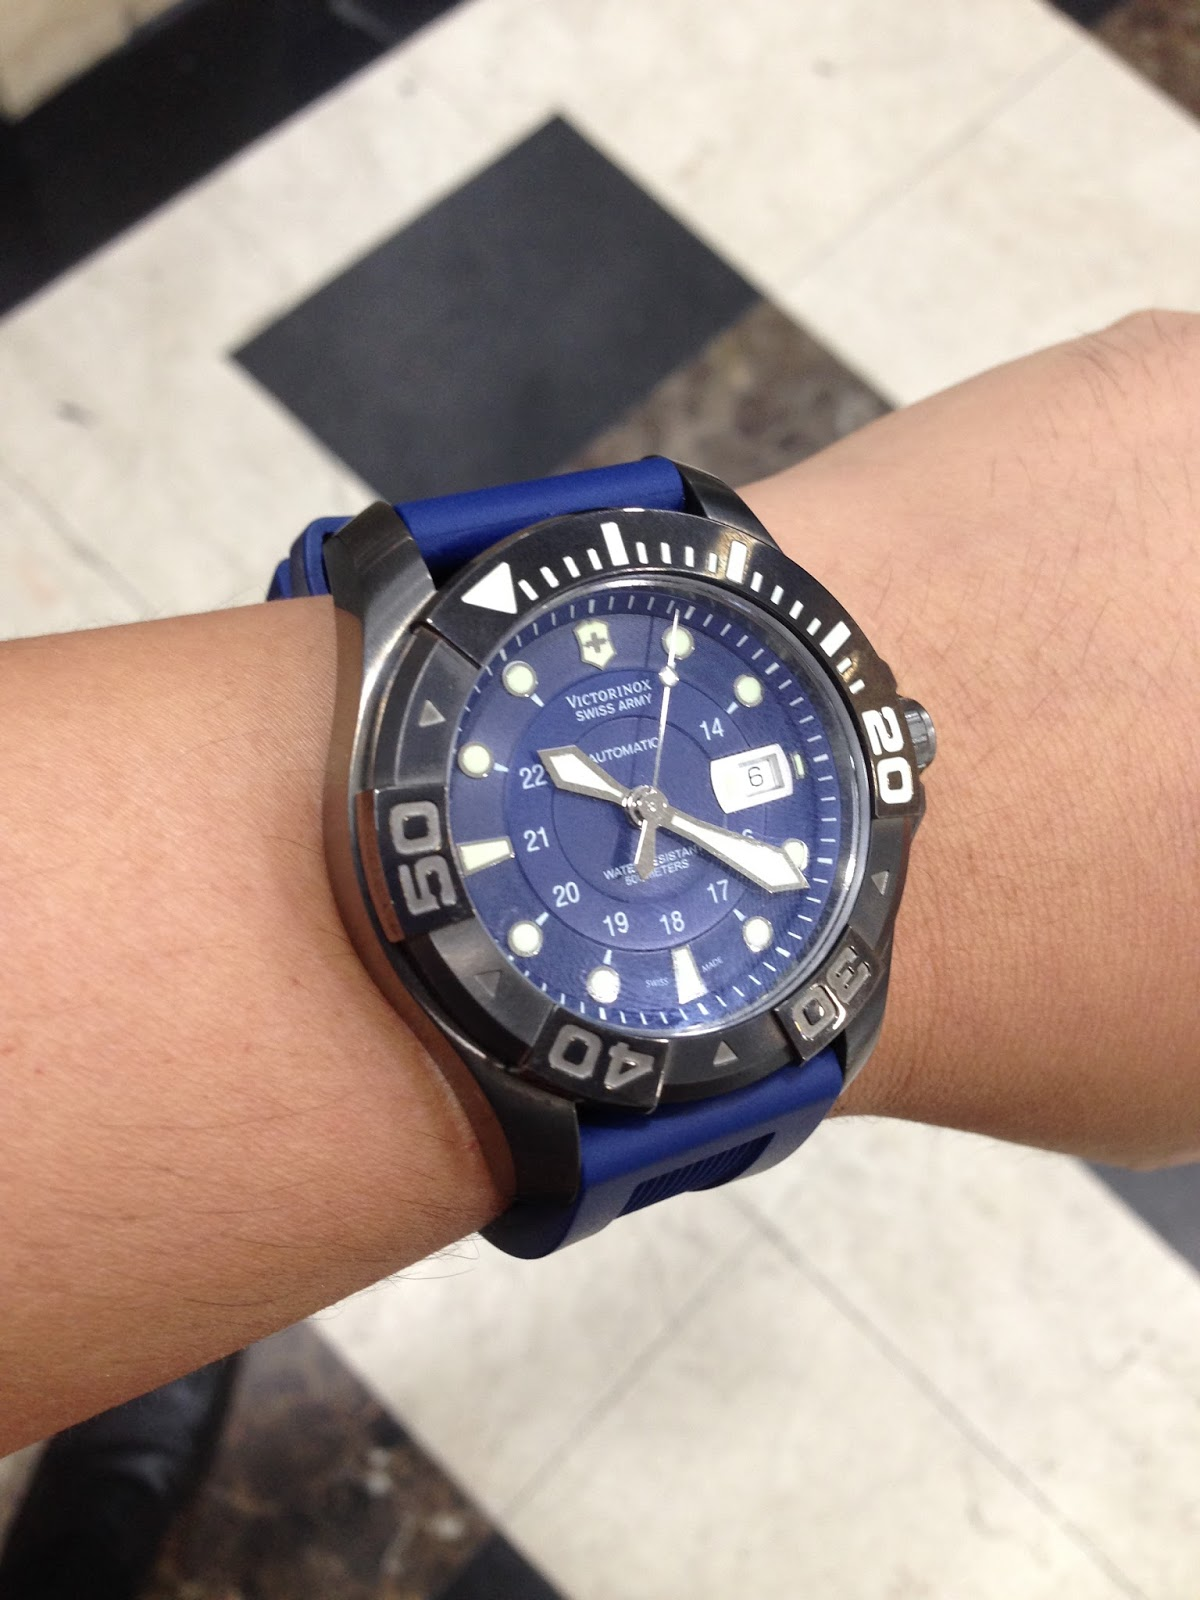 com watches gruppo reveiw nov gamma photo watchreport am divemaster watch